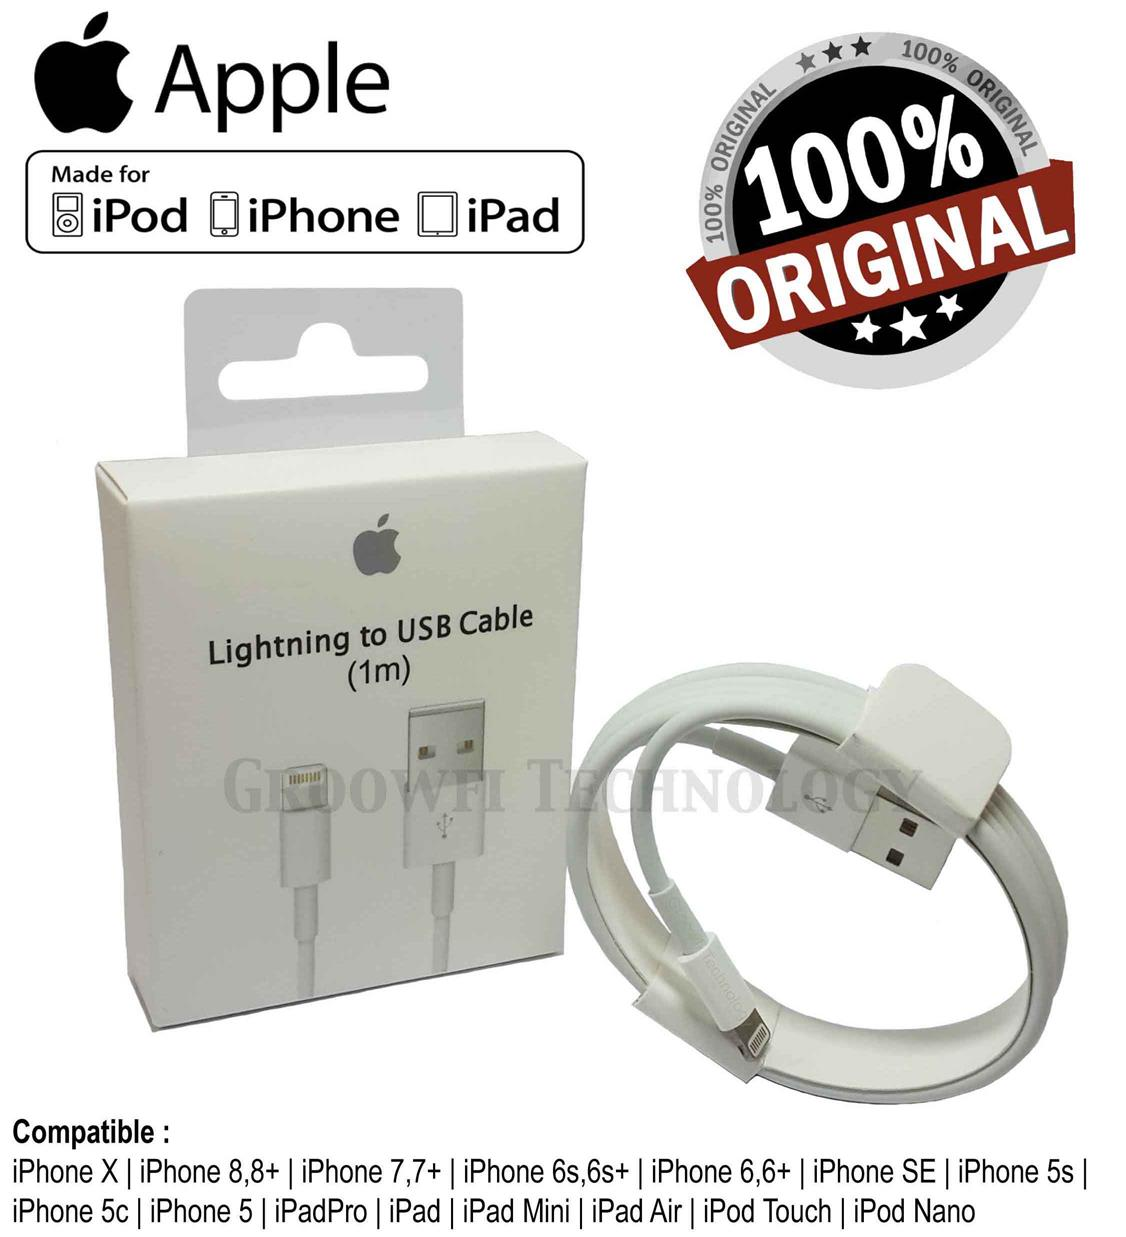 Original Apple iPhone iPad 5 6 6s 7 8 X Lightning USB Data Cable (1m)